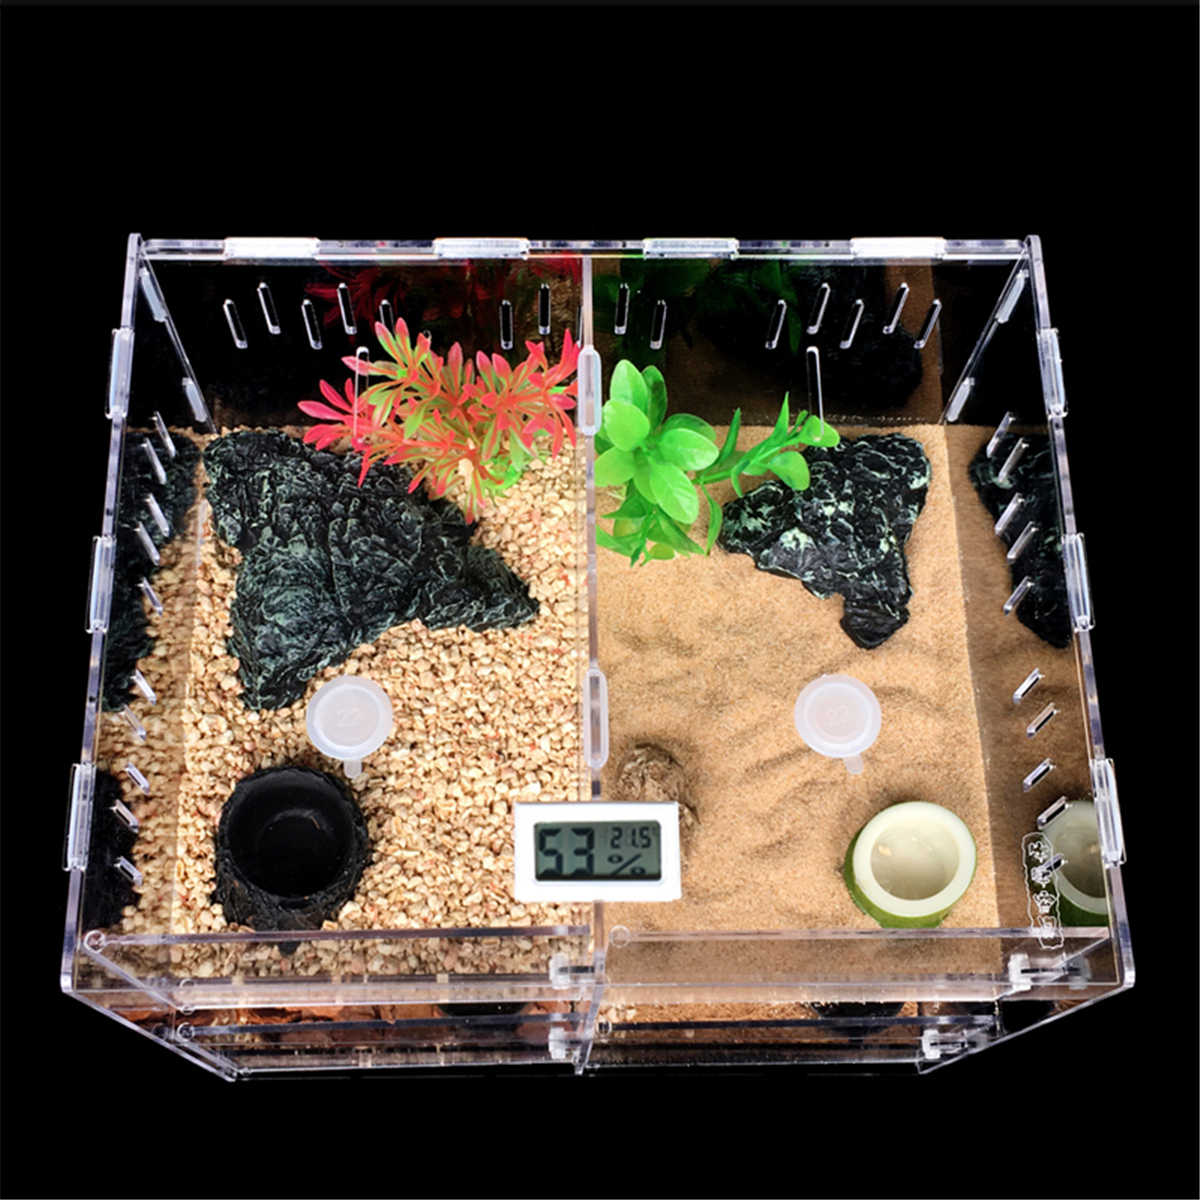 Pet Reptiles Tank Acrylic Terrarium Insect Spiders Lizard Breeding Box House Cage 2 Grids Pet Reptiles Terrariums Transparent